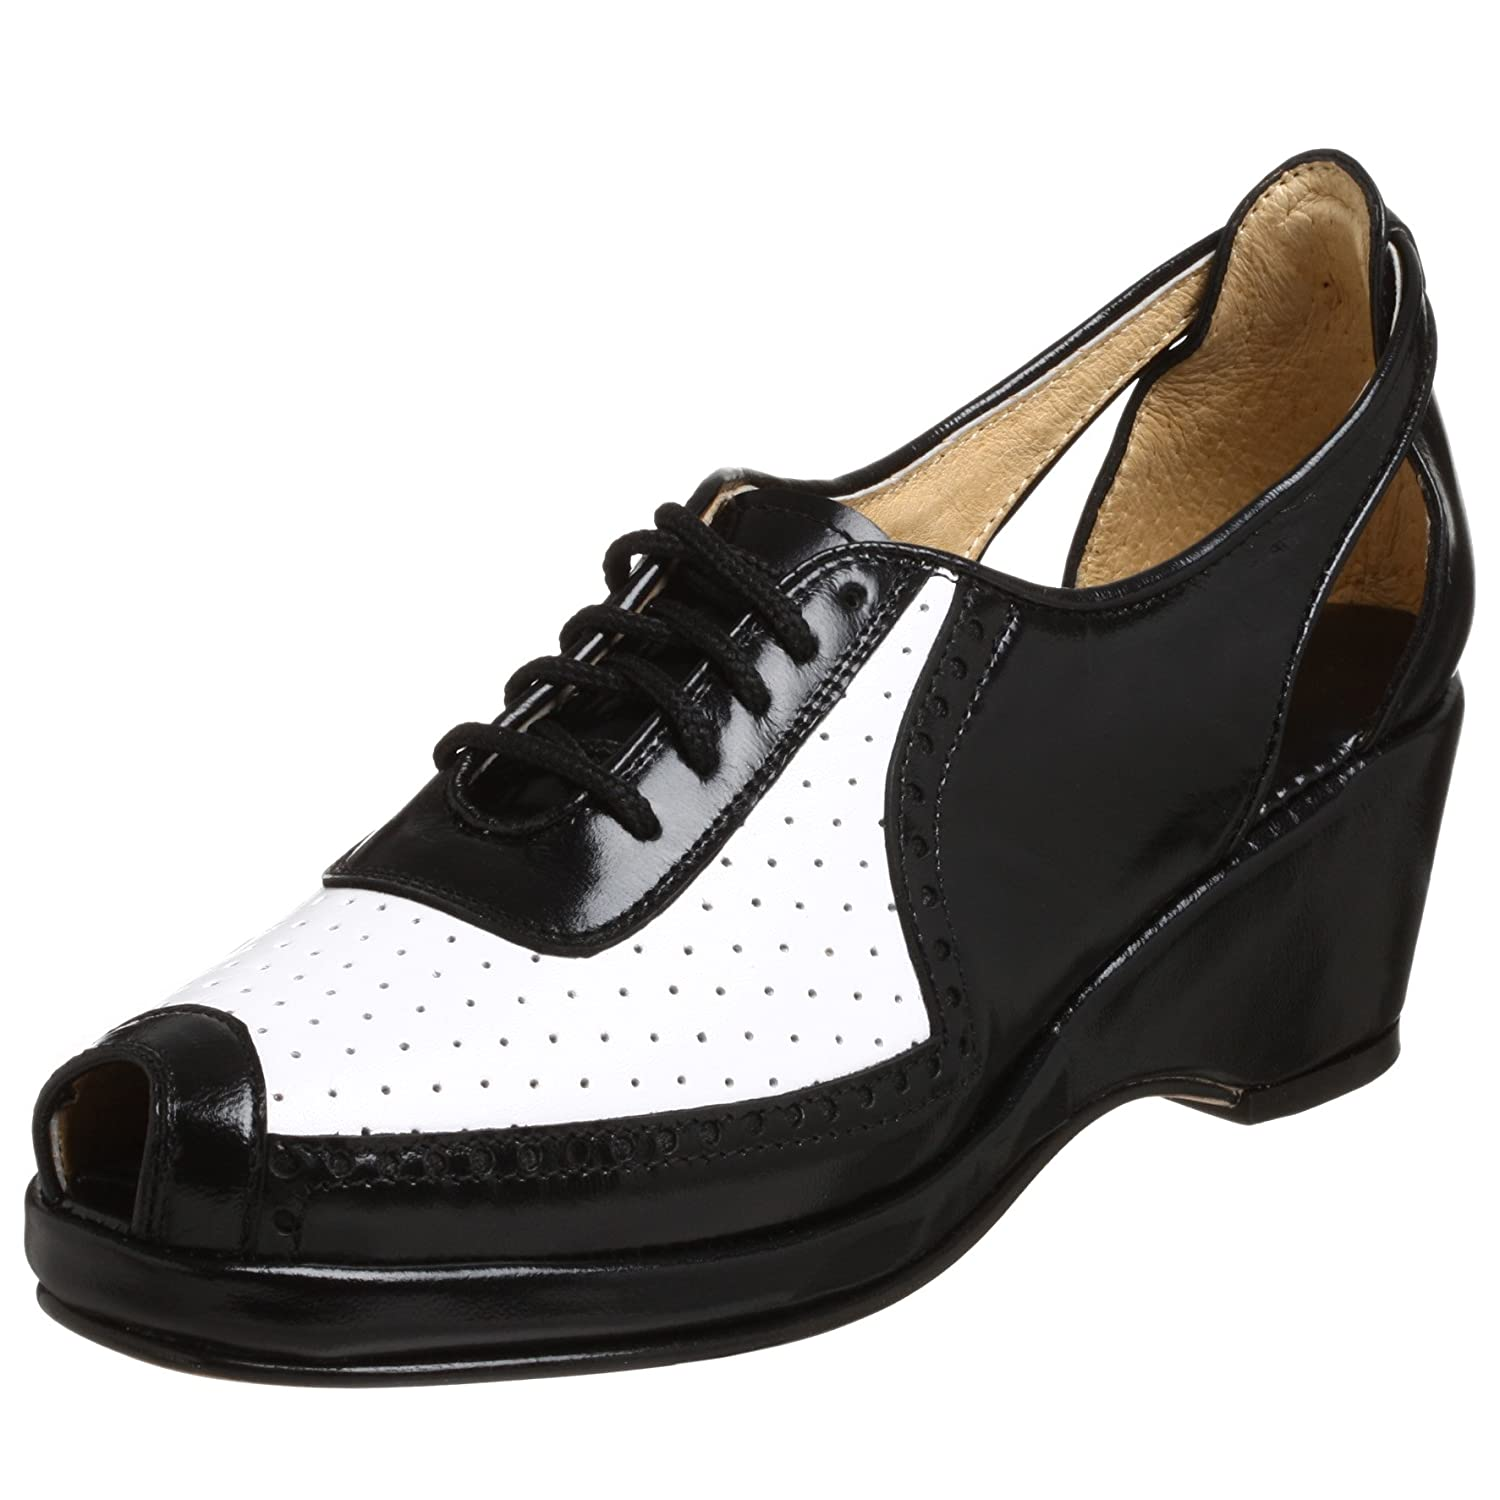 Re-Mix Vintage Women's Spectator Pump - Free Overnight Shipping & Return Shipping: Endless.com from endless.com